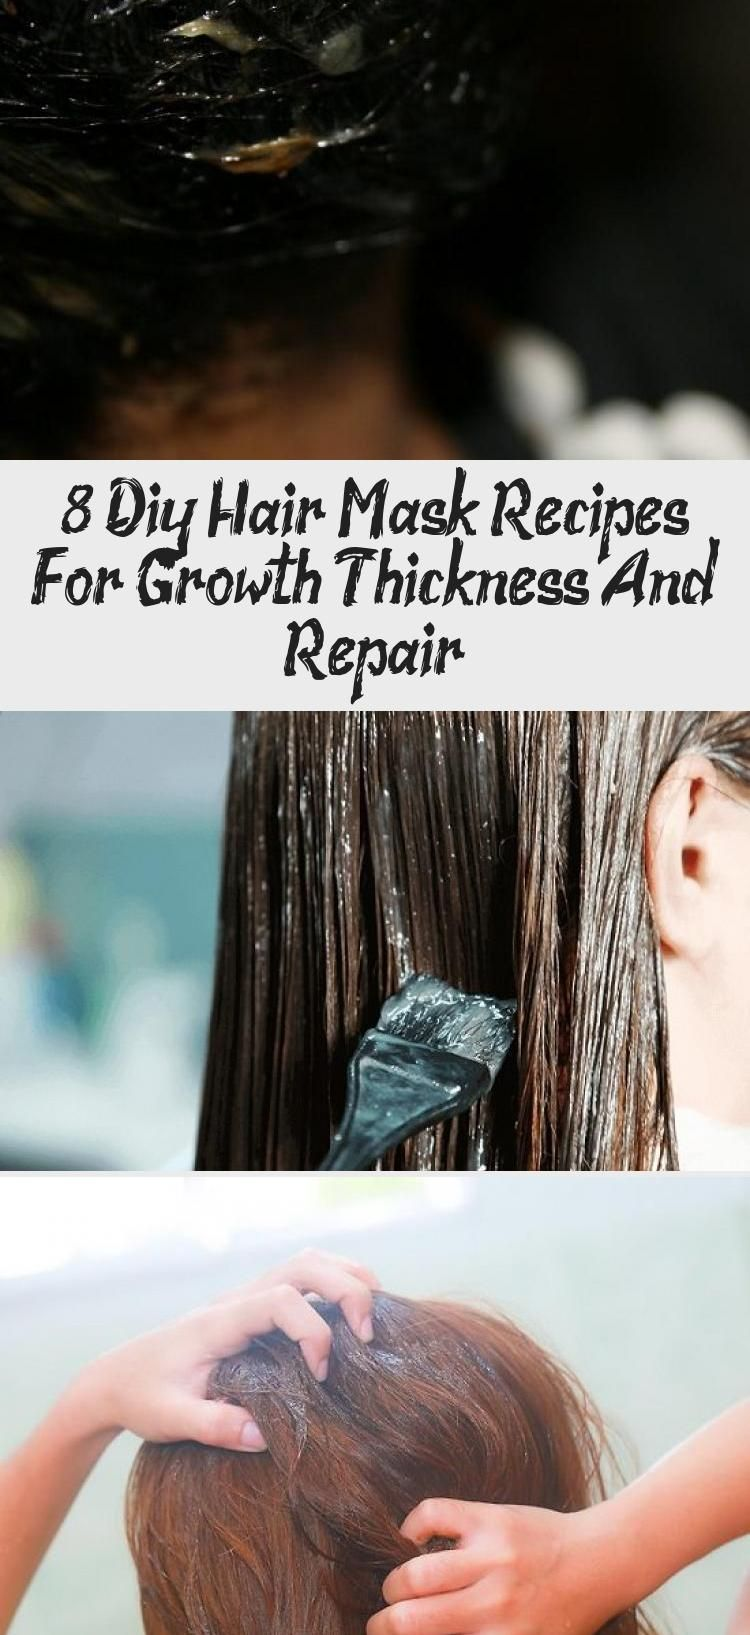 Hair Supplement} and DIY hair mask recipes for growth and thickness are all over the internet, but these recipes are not only safe but also helps to repair your hair effectively! #hairgrowthSuperFast #hairgrowthLength #Newhairgrowth #hairgrowthProgress #hairgrowthInAYear